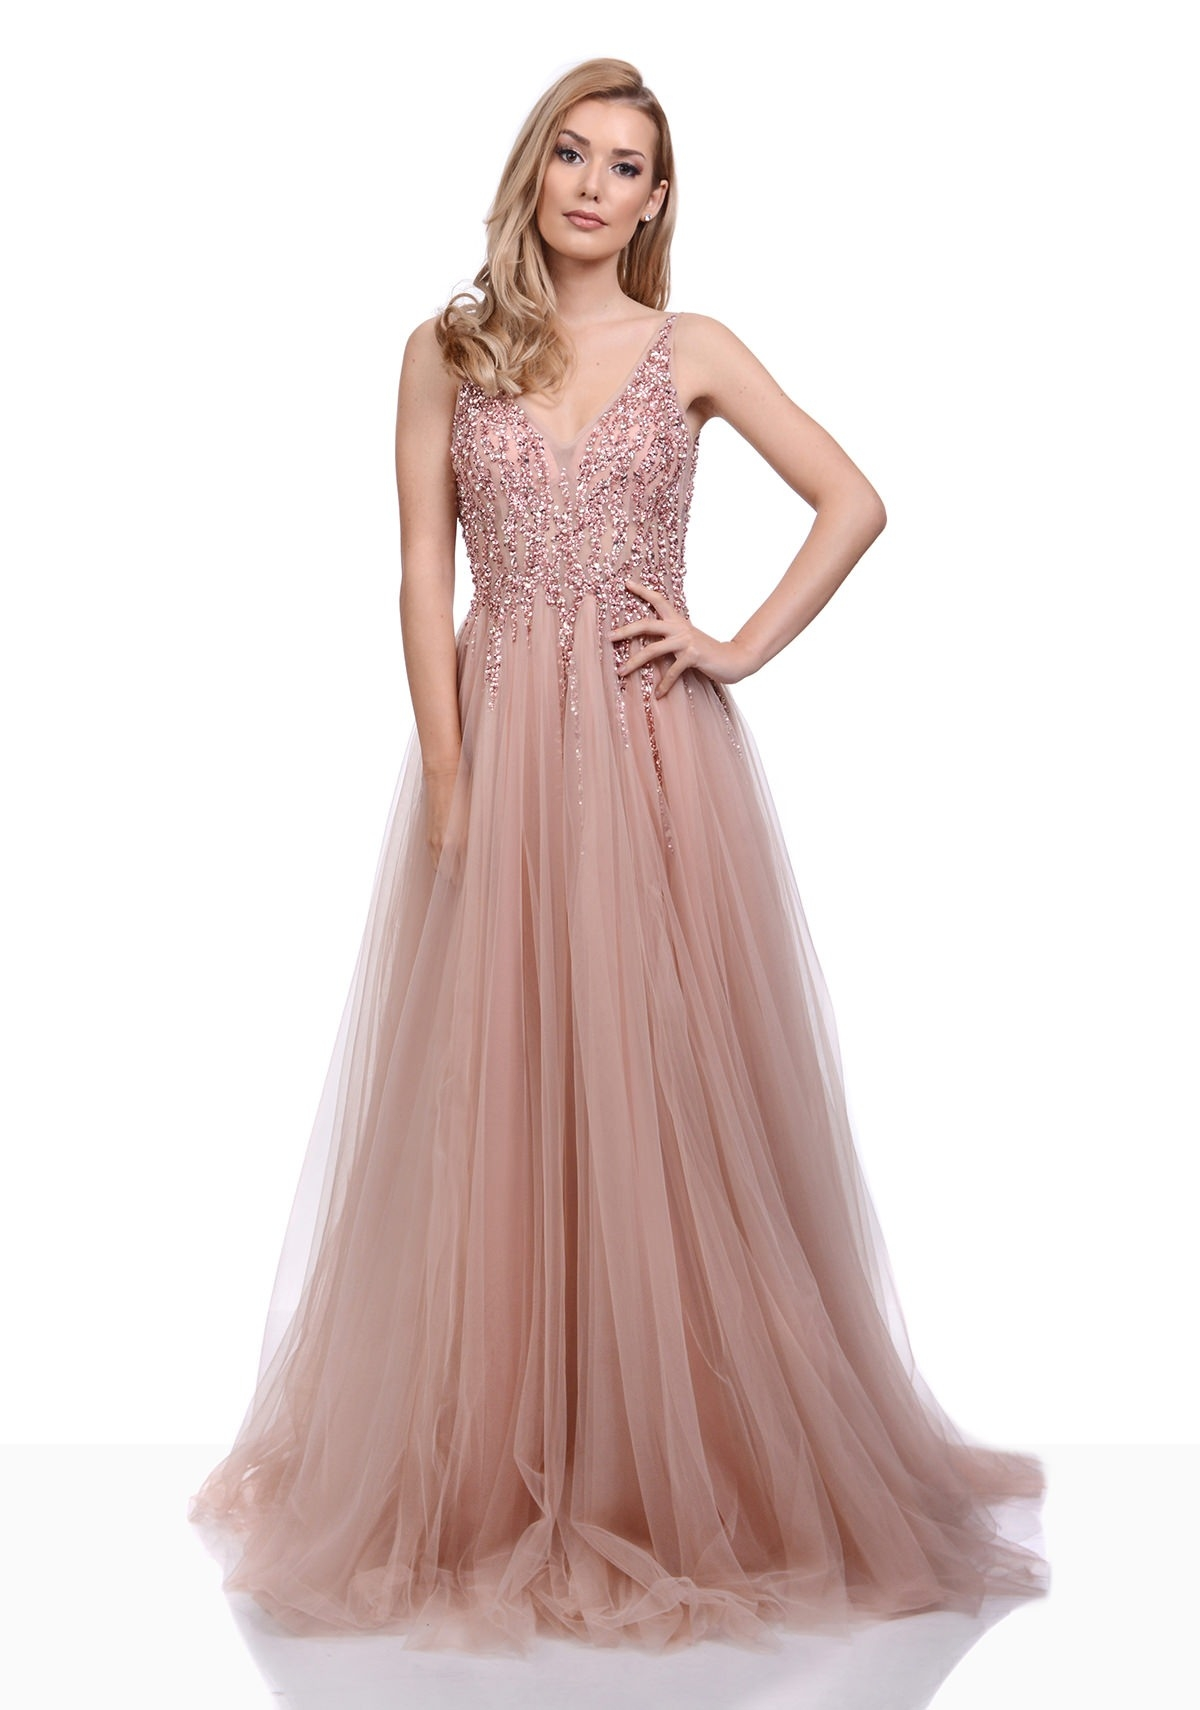 Formal Genial Abiball Kleid für 201913 Elegant Abiball Kleid Stylish